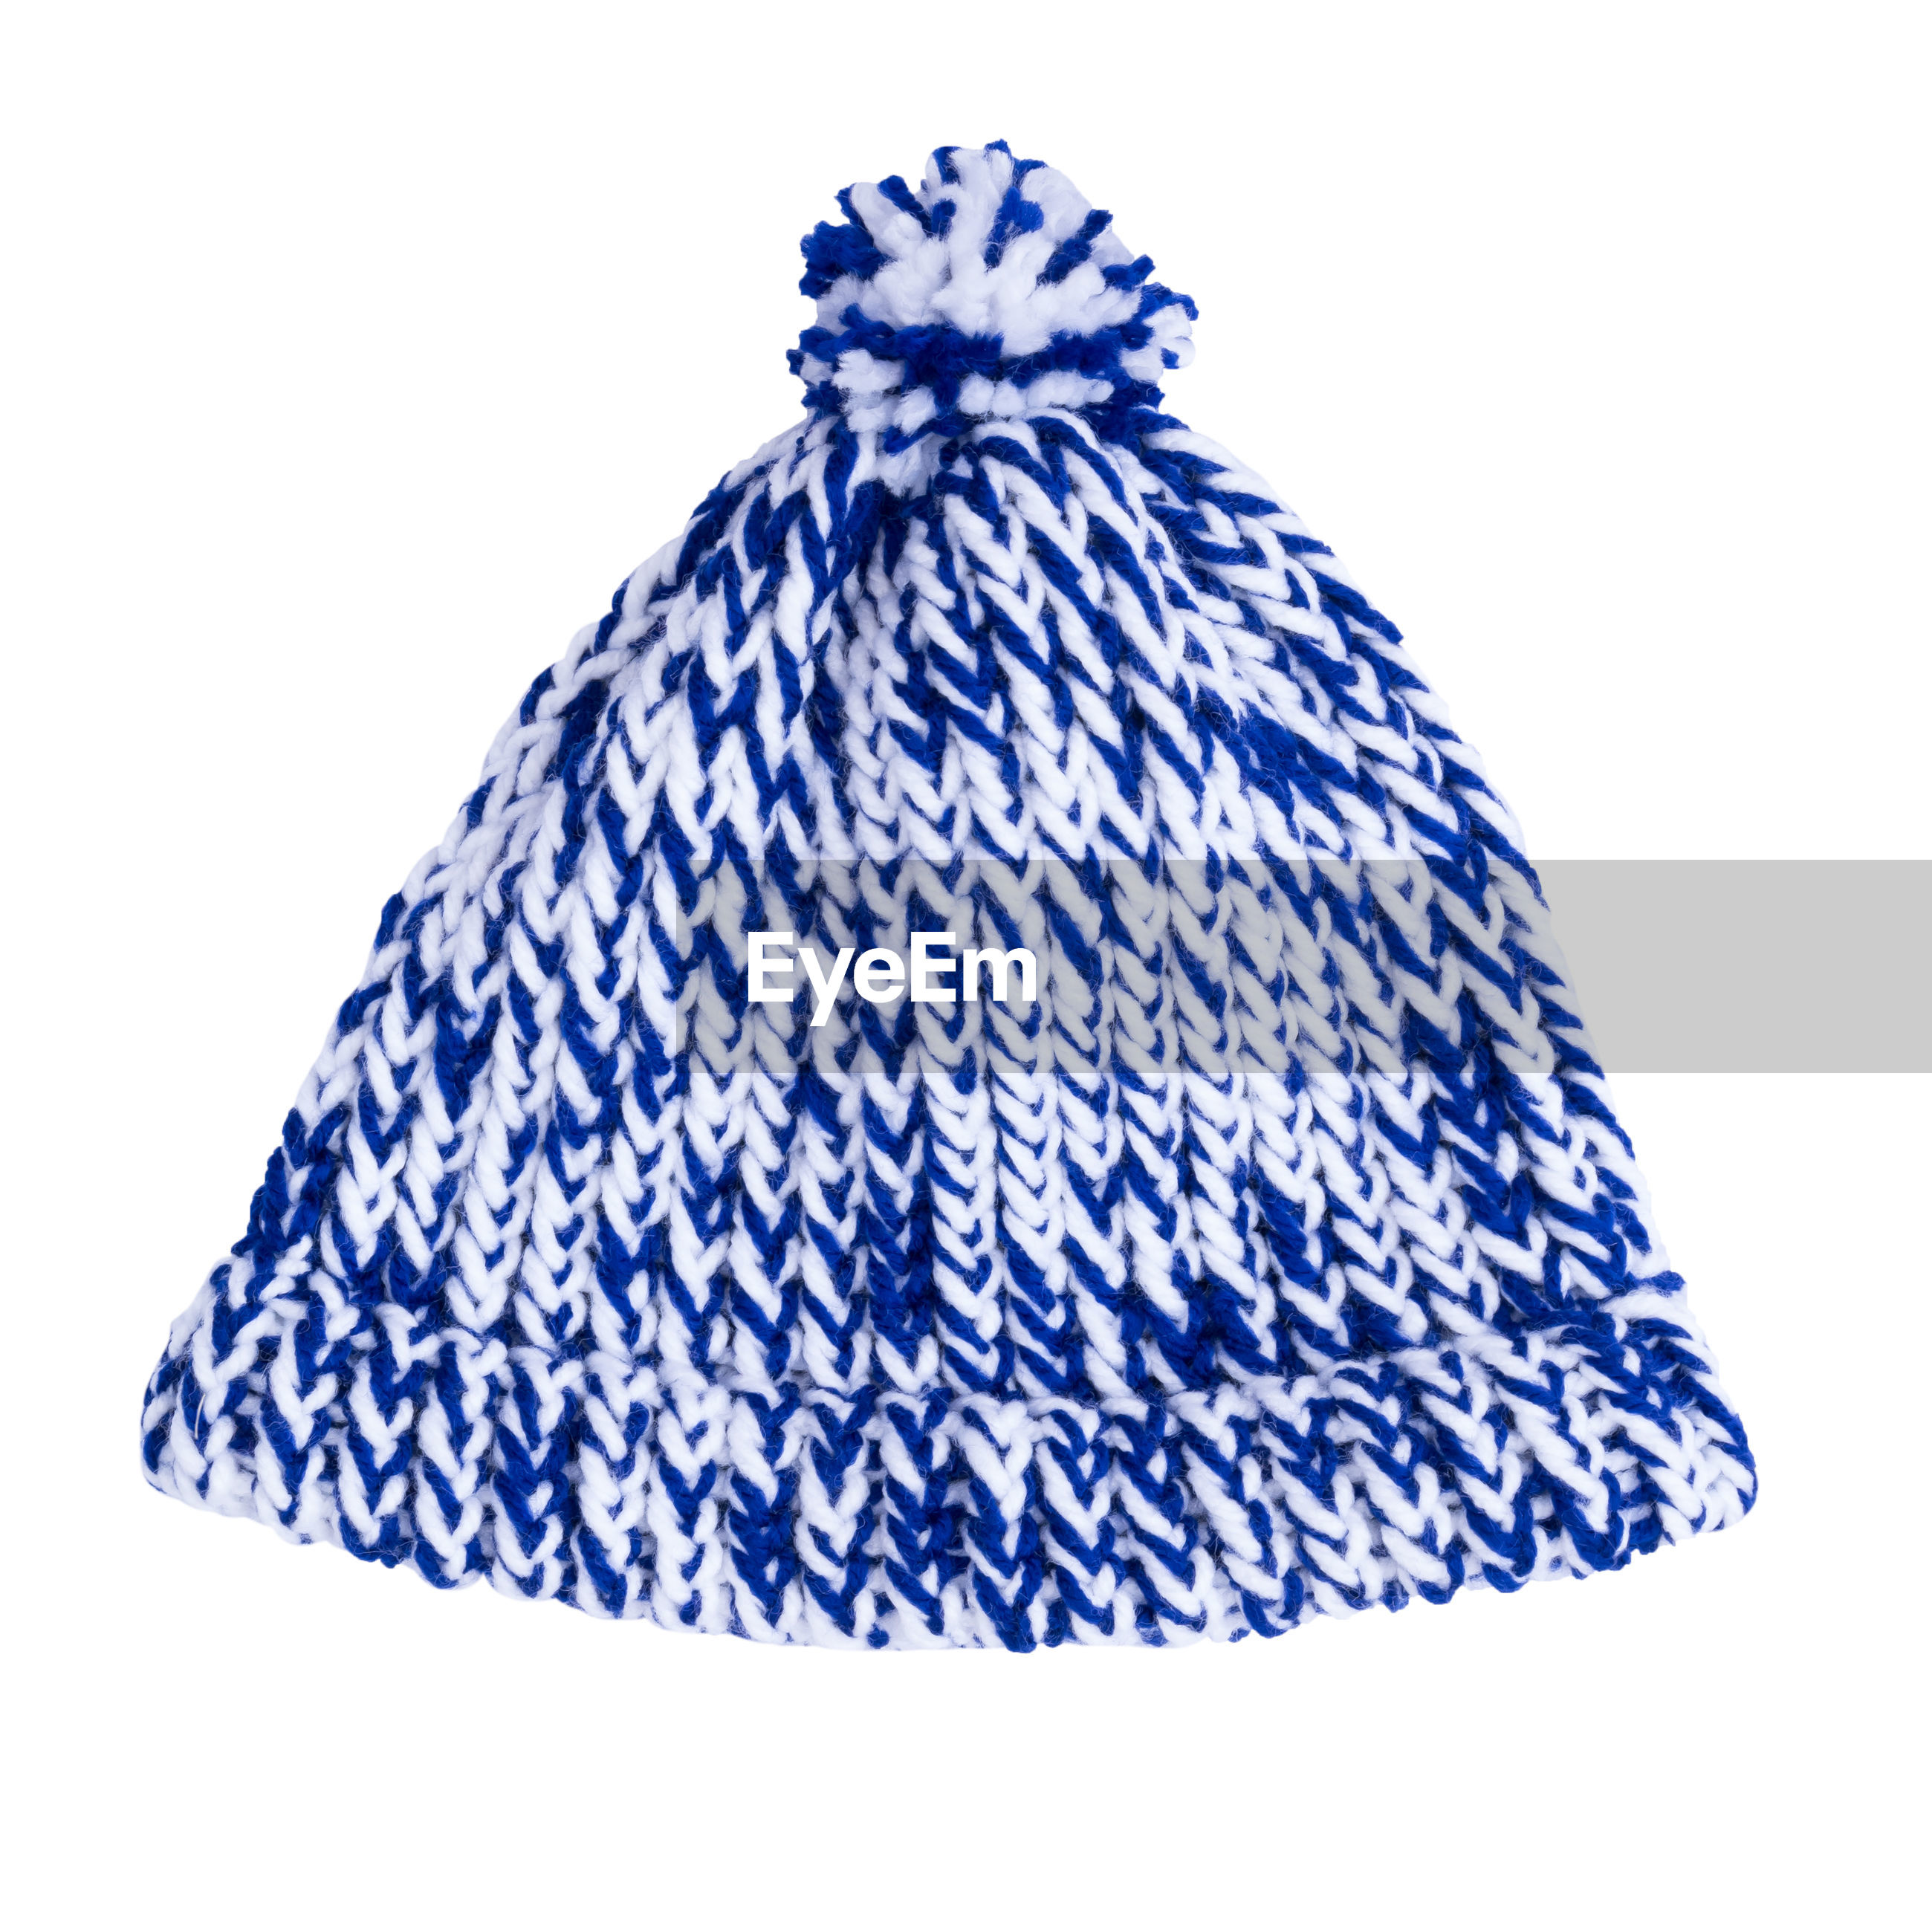 Close-up of knit hat against white background